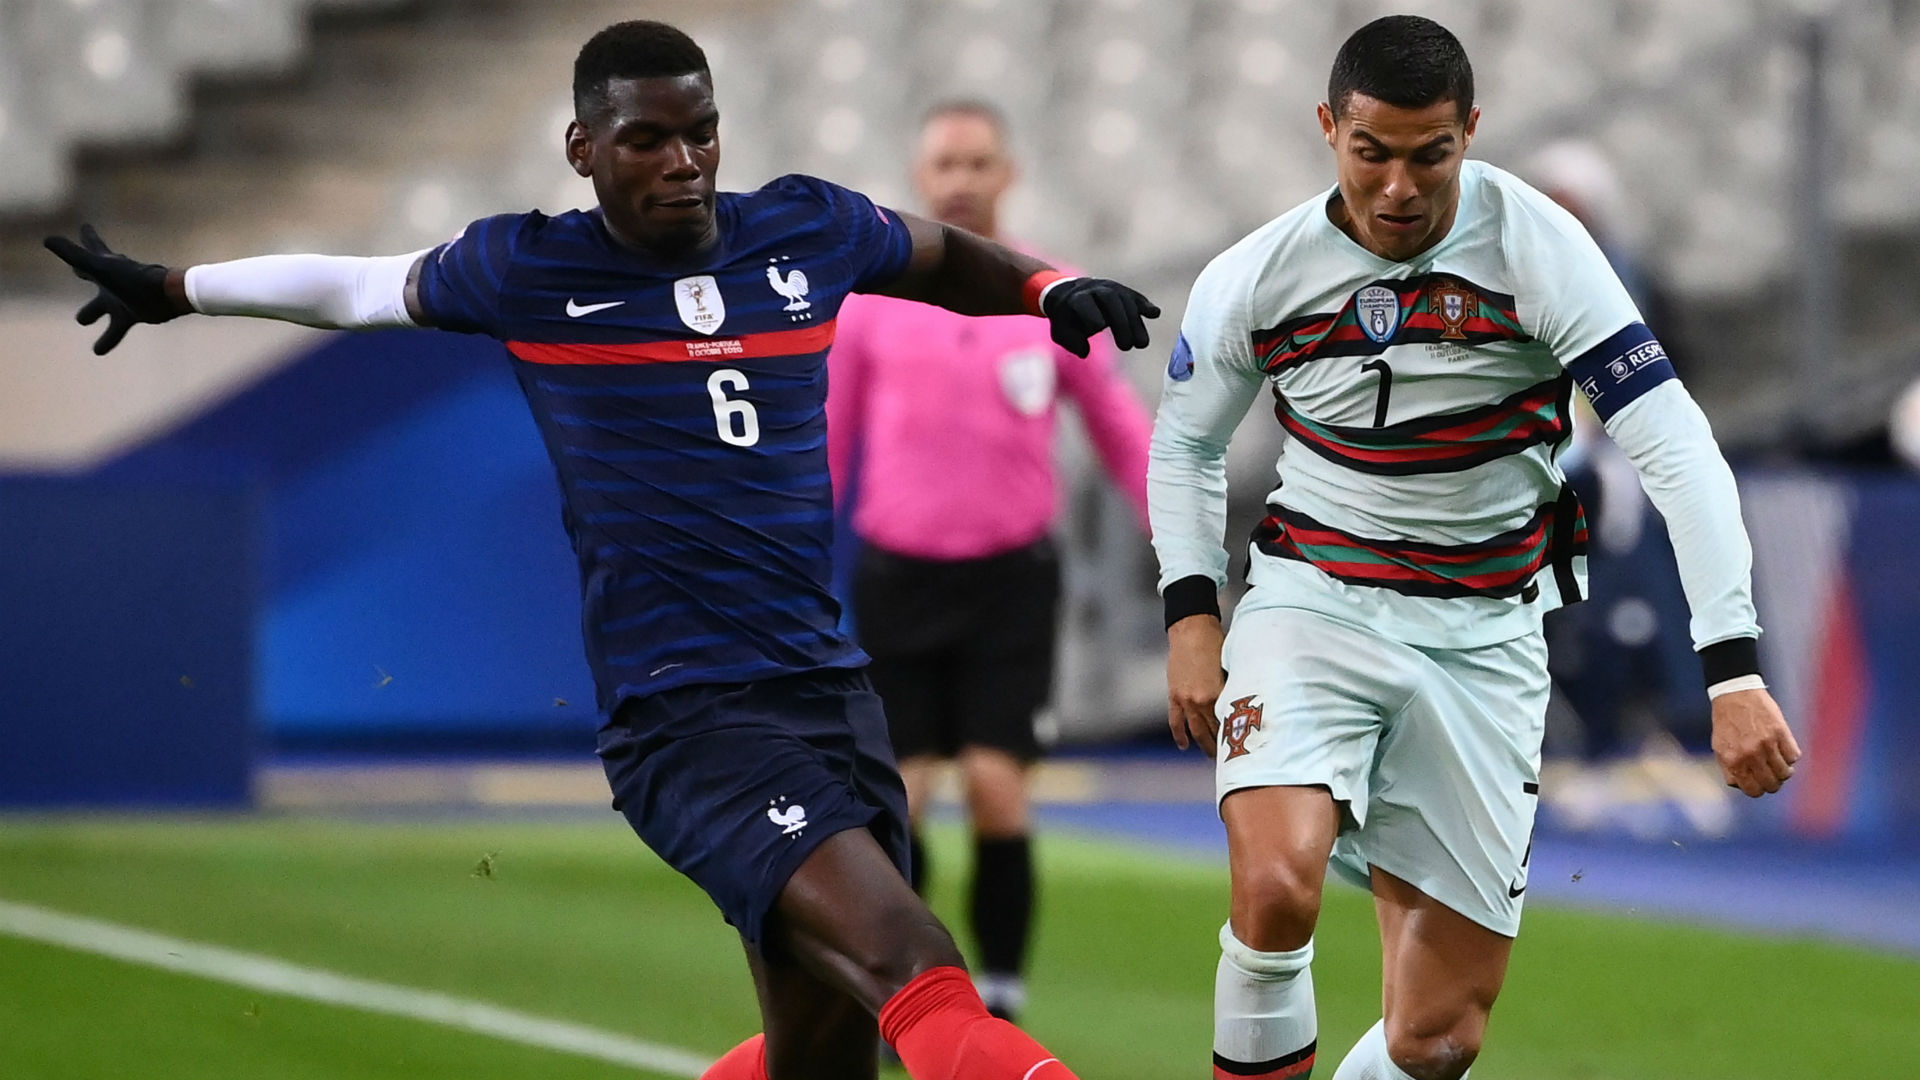 'Both teams were on the back foot too much' - Santos disappointed by a lack of 'explosiveness' in France-Portugal draw